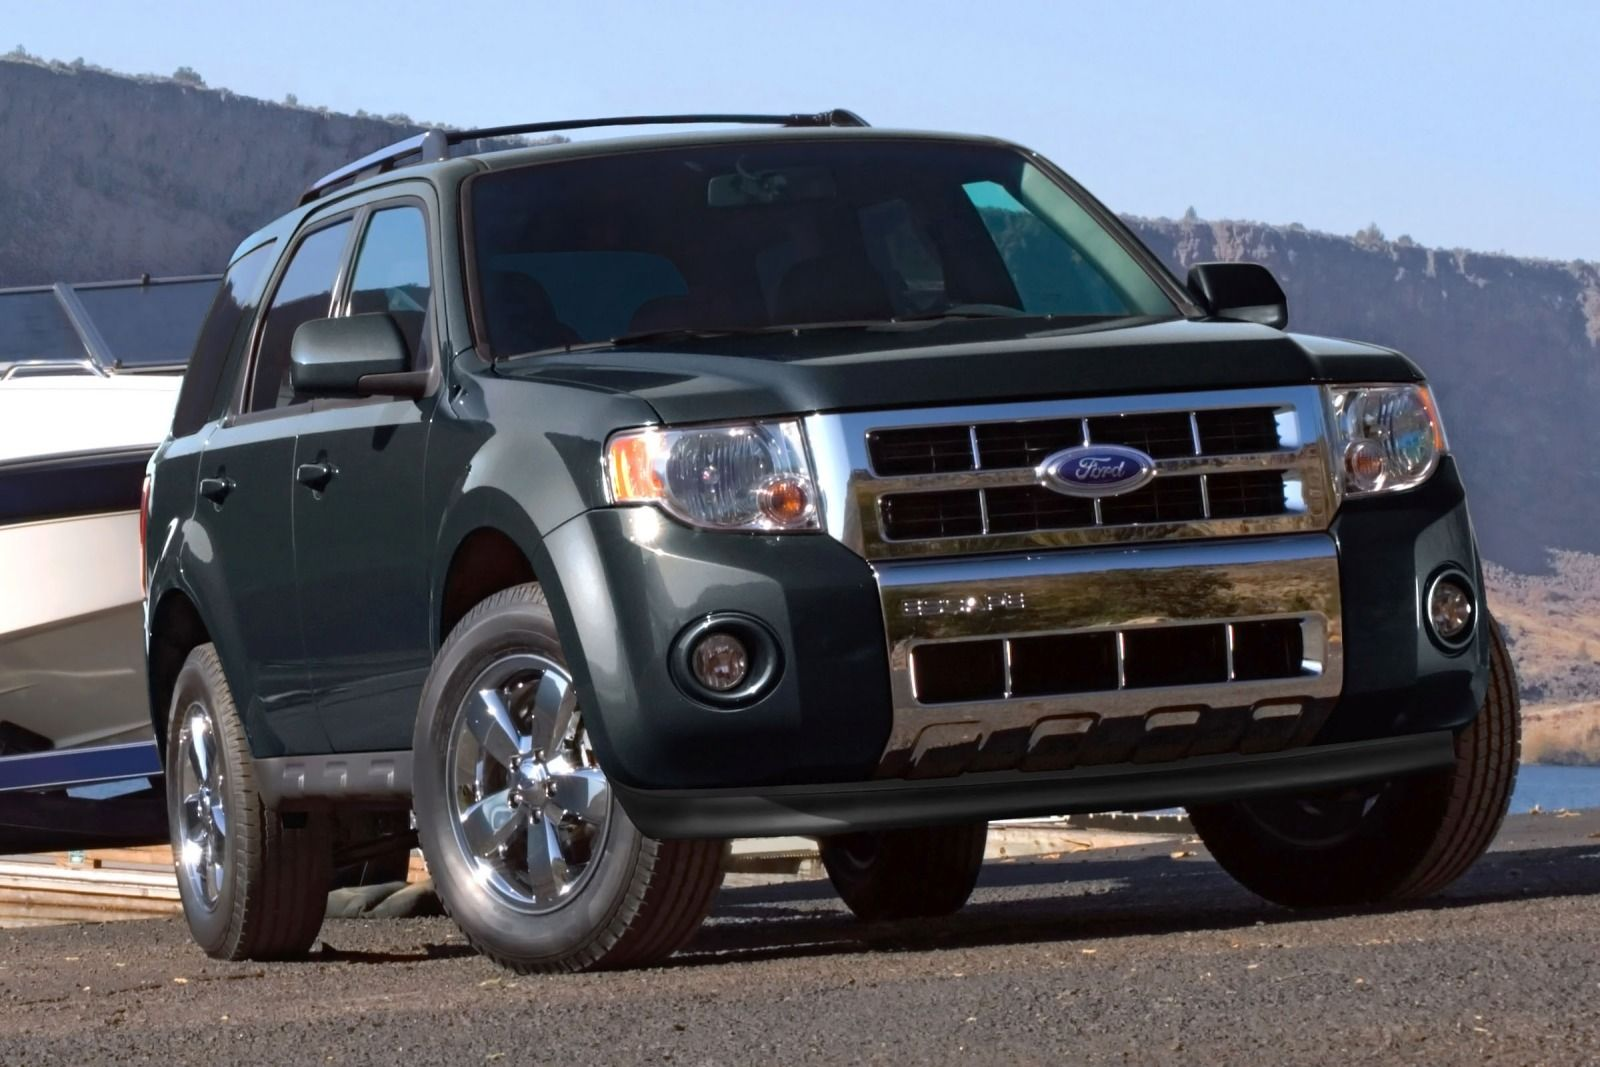 3 besides Wallpaper 7c in addition 42 in addition 2 as well Wallpaper 0d. on ford escape